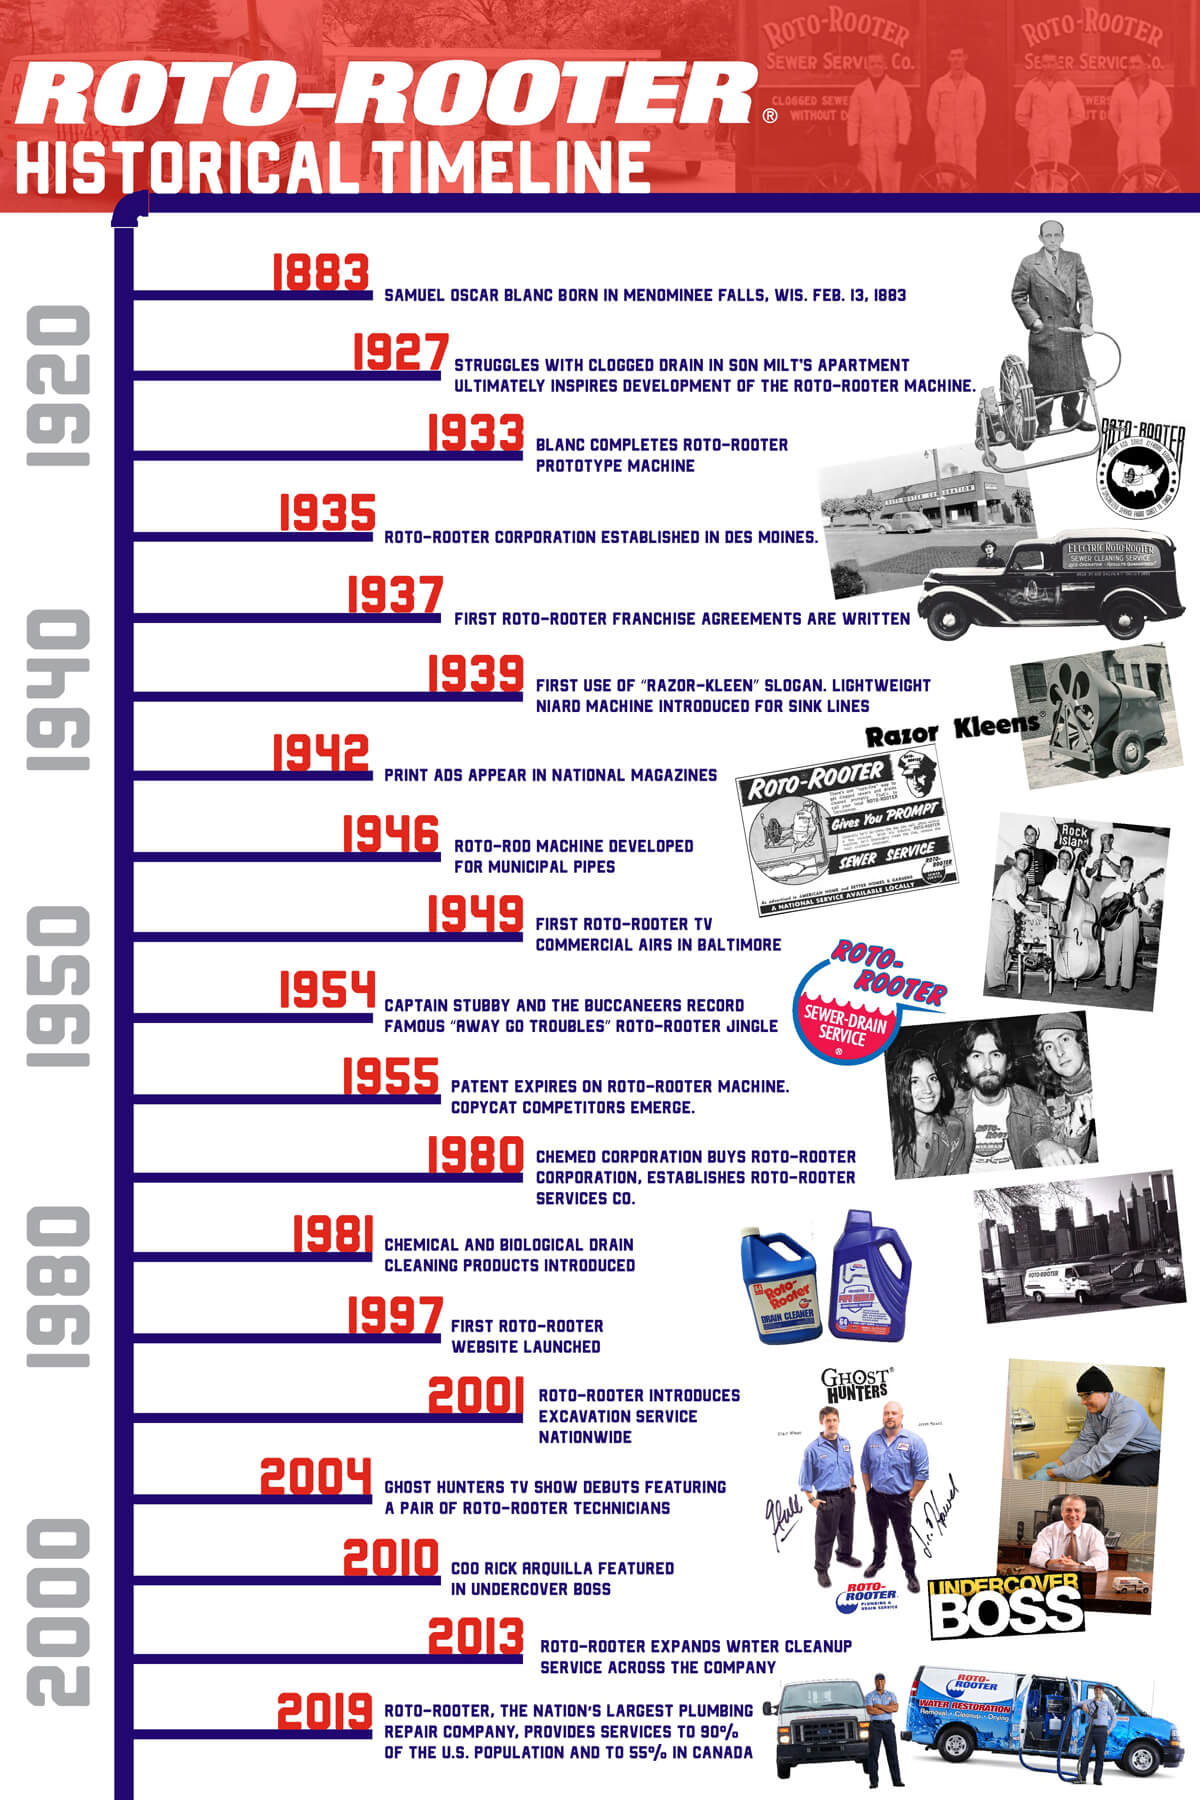 roto-rooter historical timeline